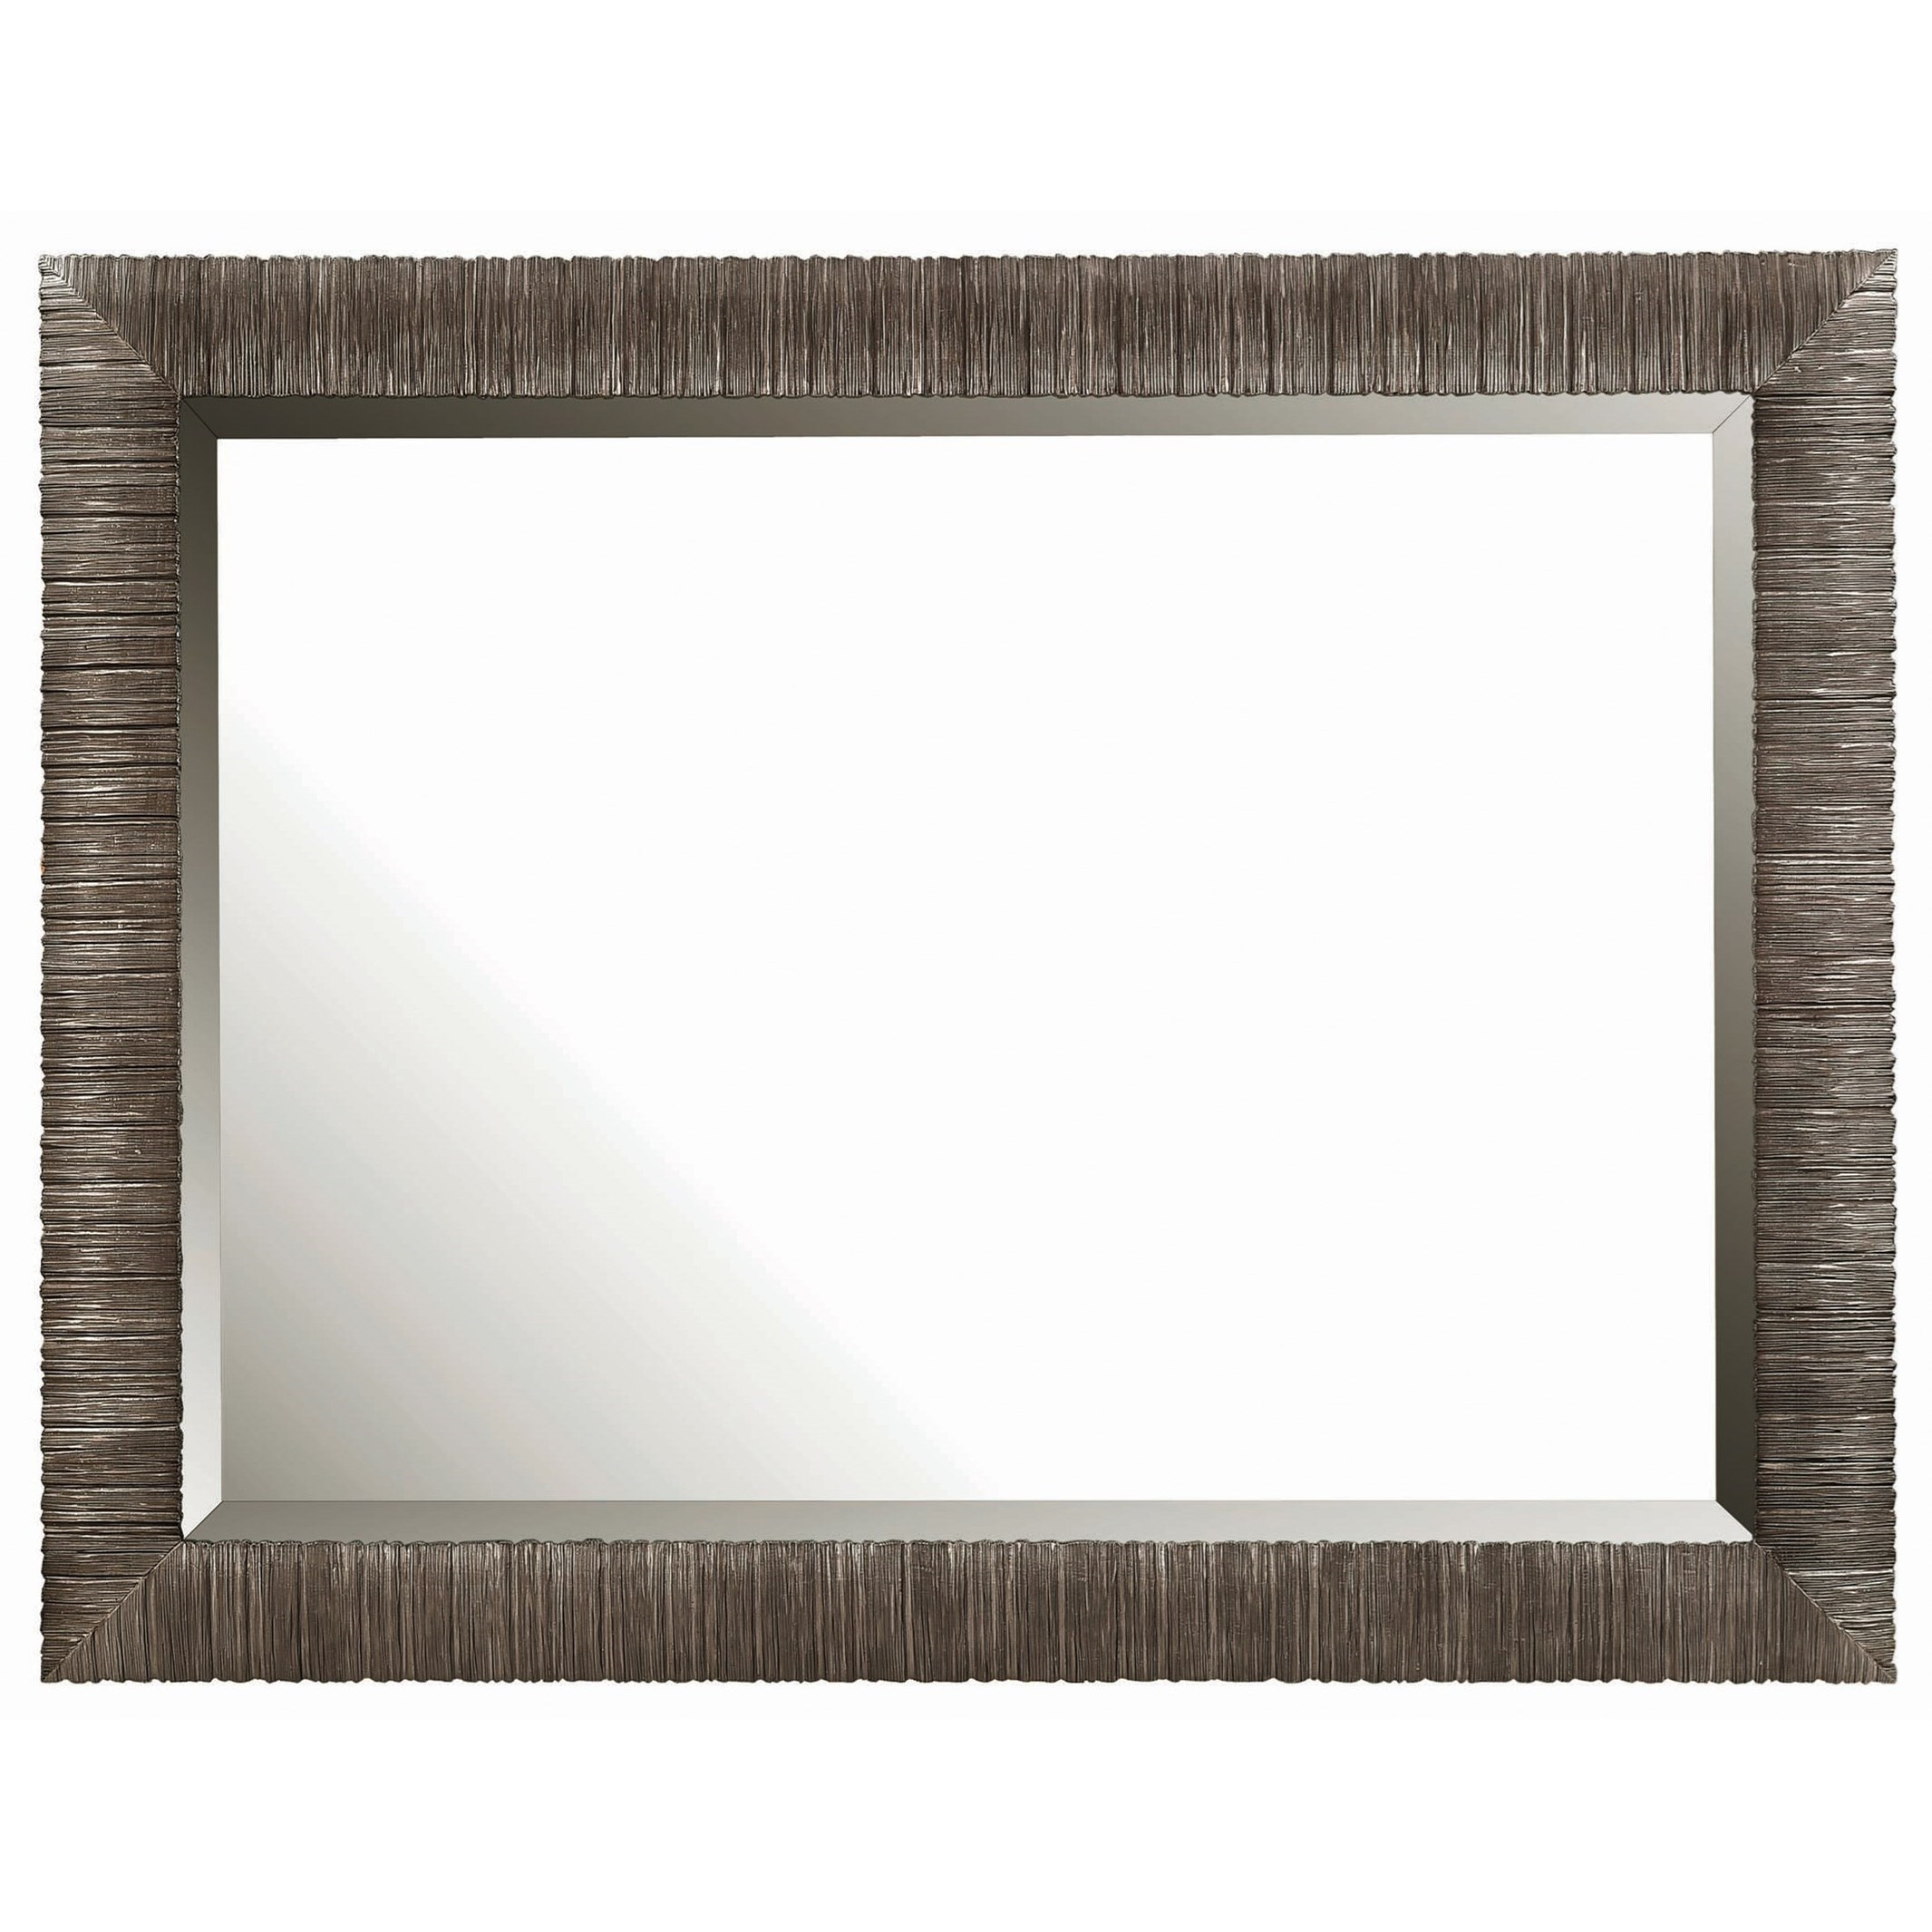 A.R.T. Furniture Inc Geode Occo Mirror - Item Number: 238121-2303